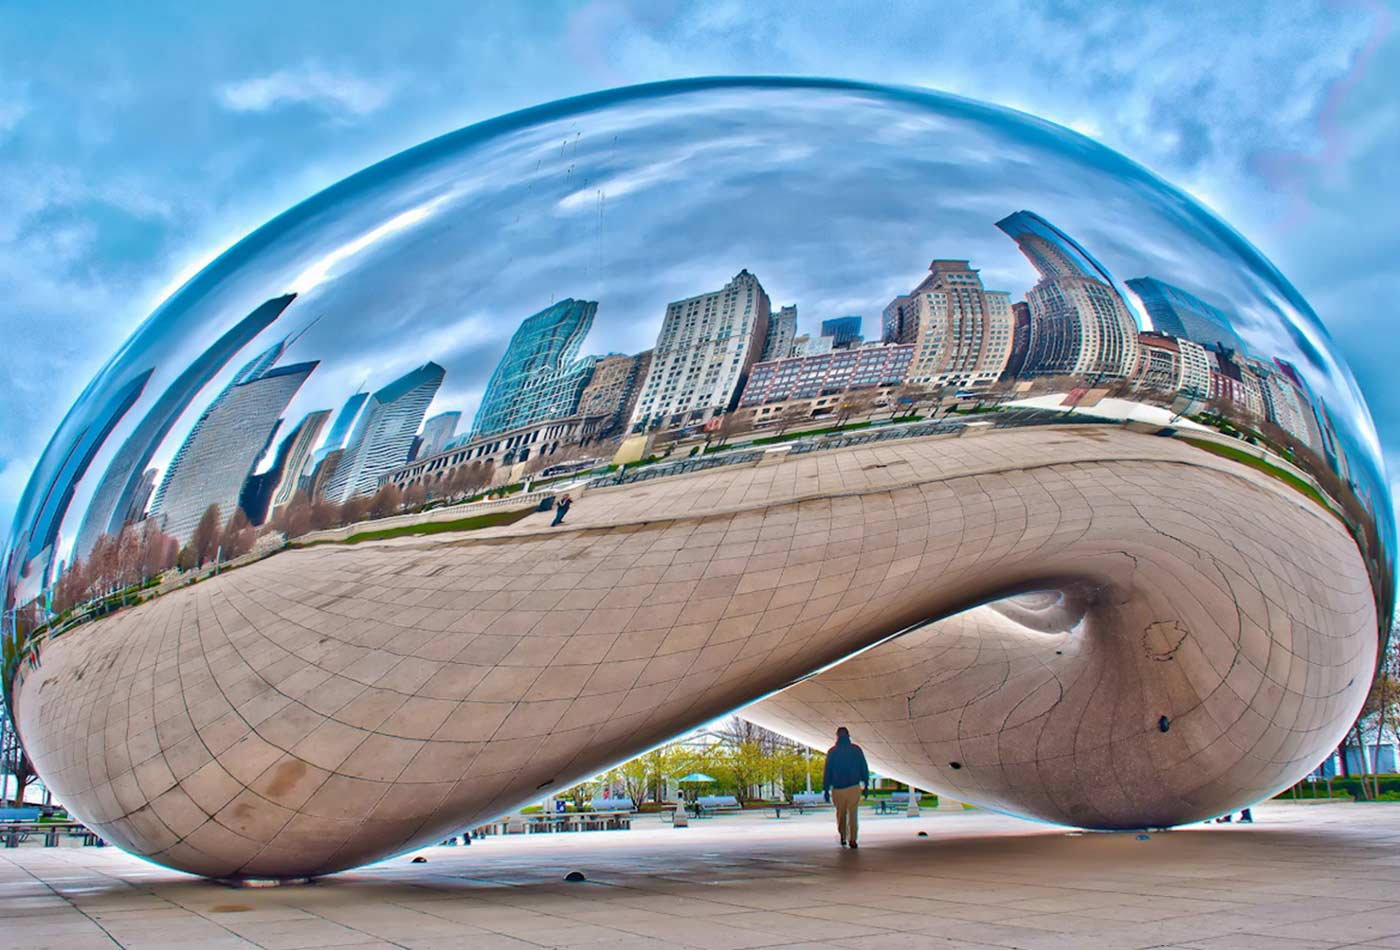 Cloud Gate sculpture in Chicago.